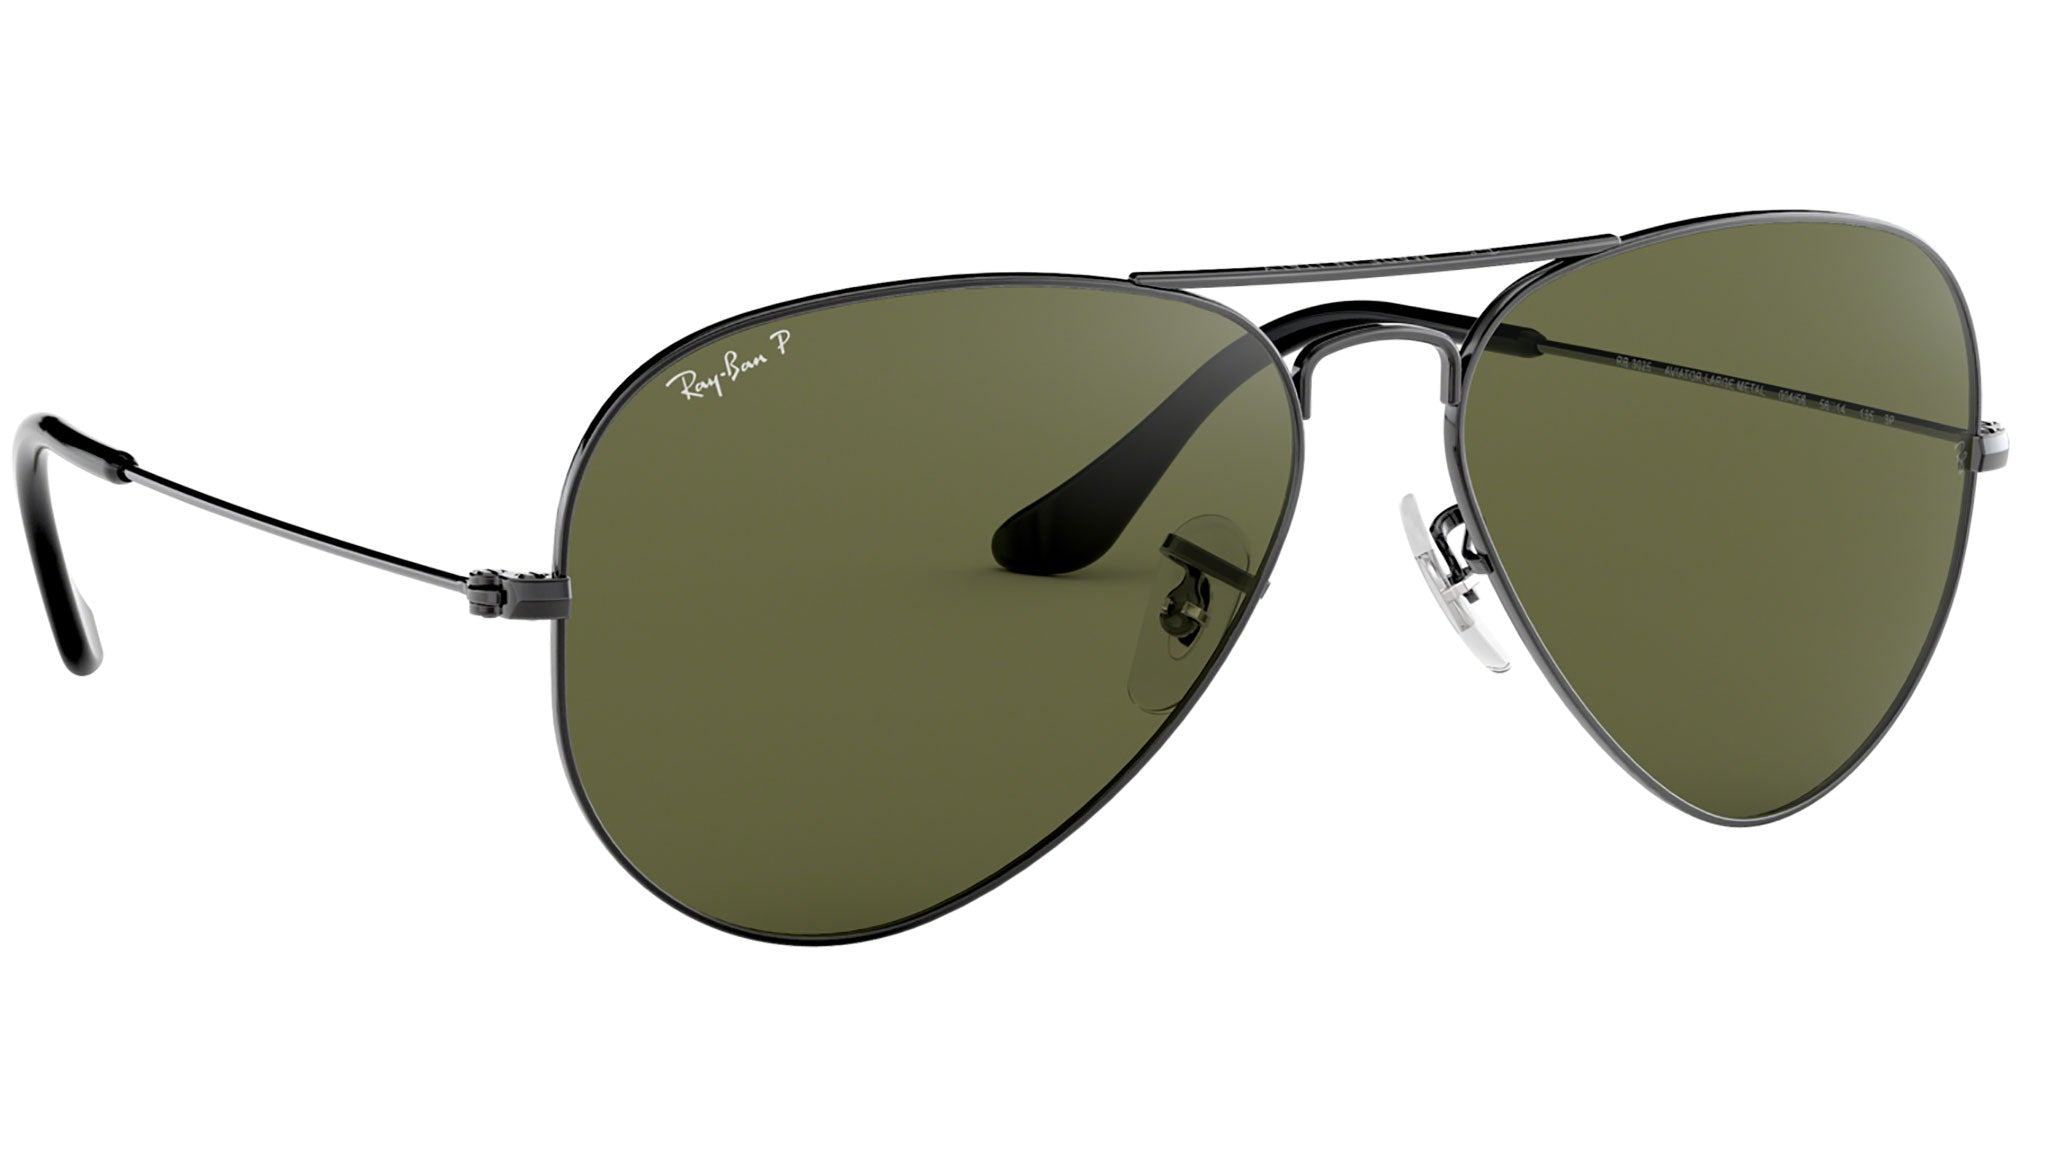 Aviator Classic RB3025 polished gunmetal